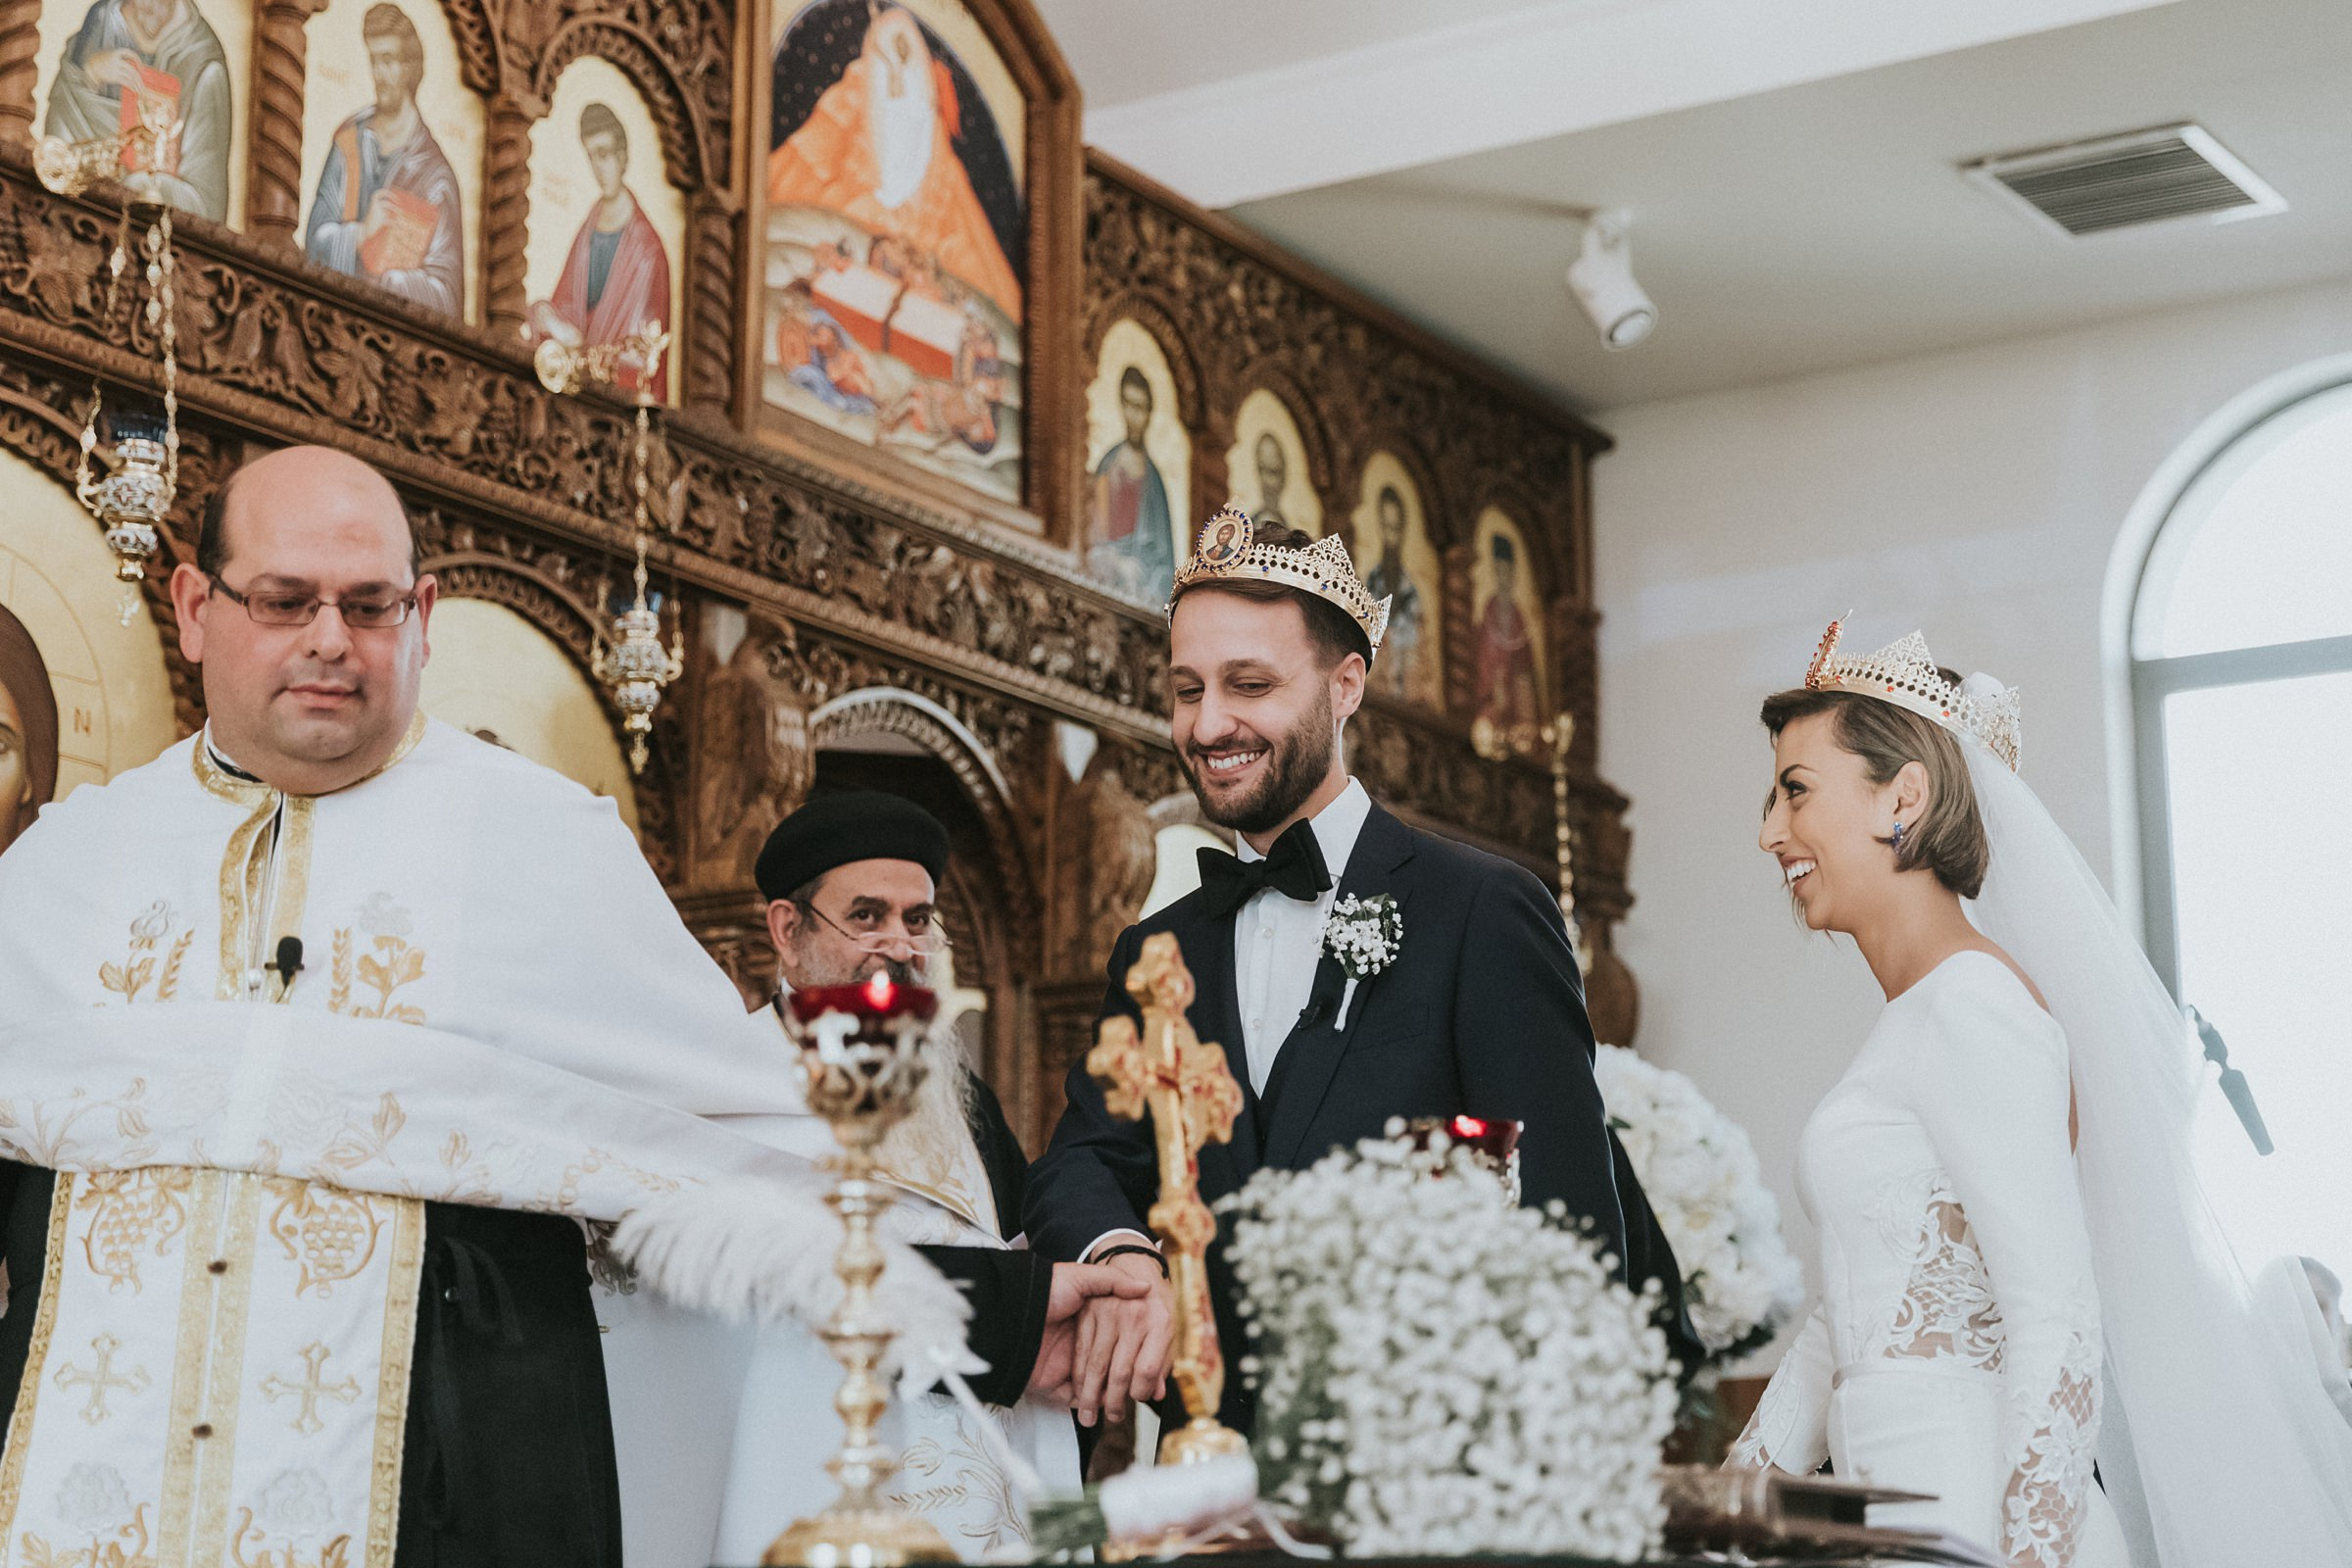 circling the holy table at antiochian orthodox wedding